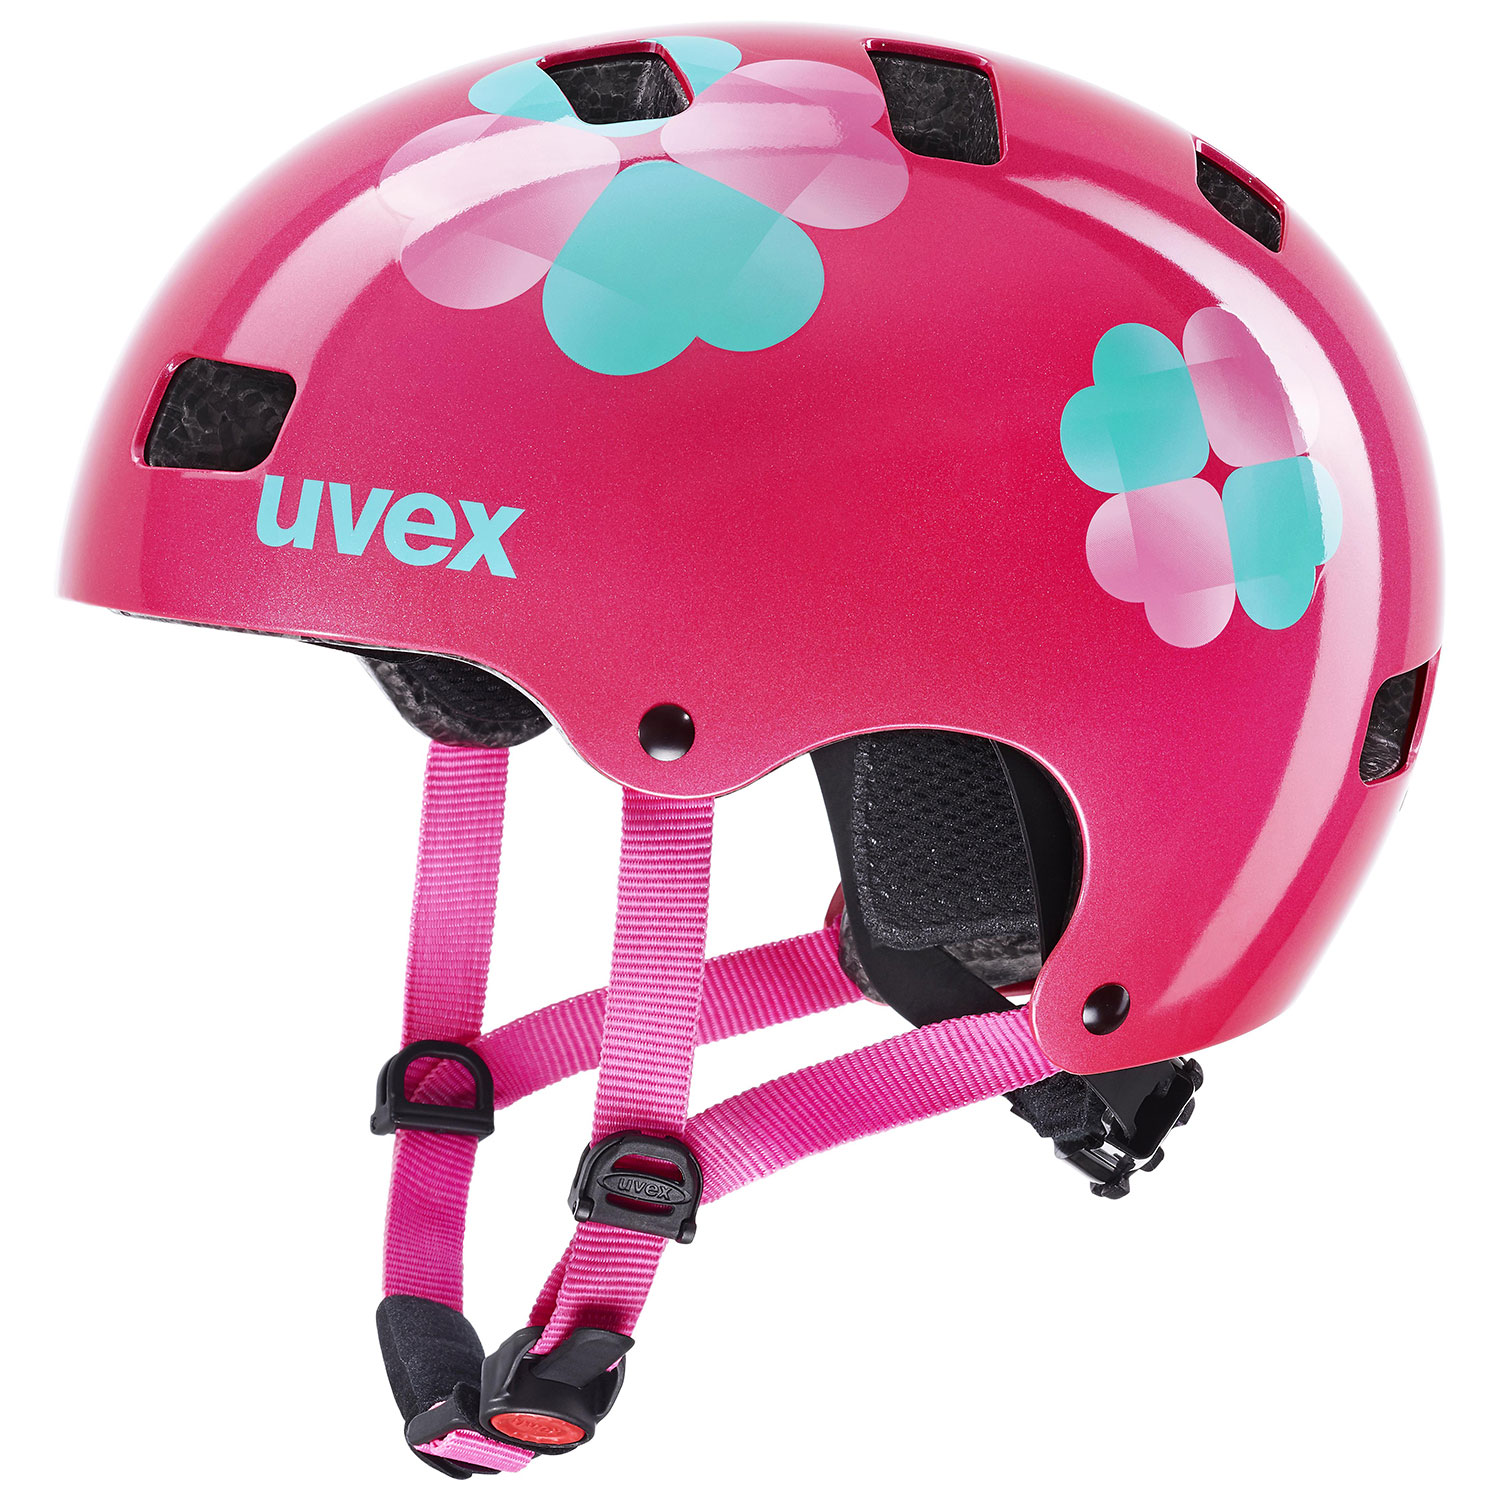 2021 UVEX HELMA KID 3, PINK FLOWER 51-55